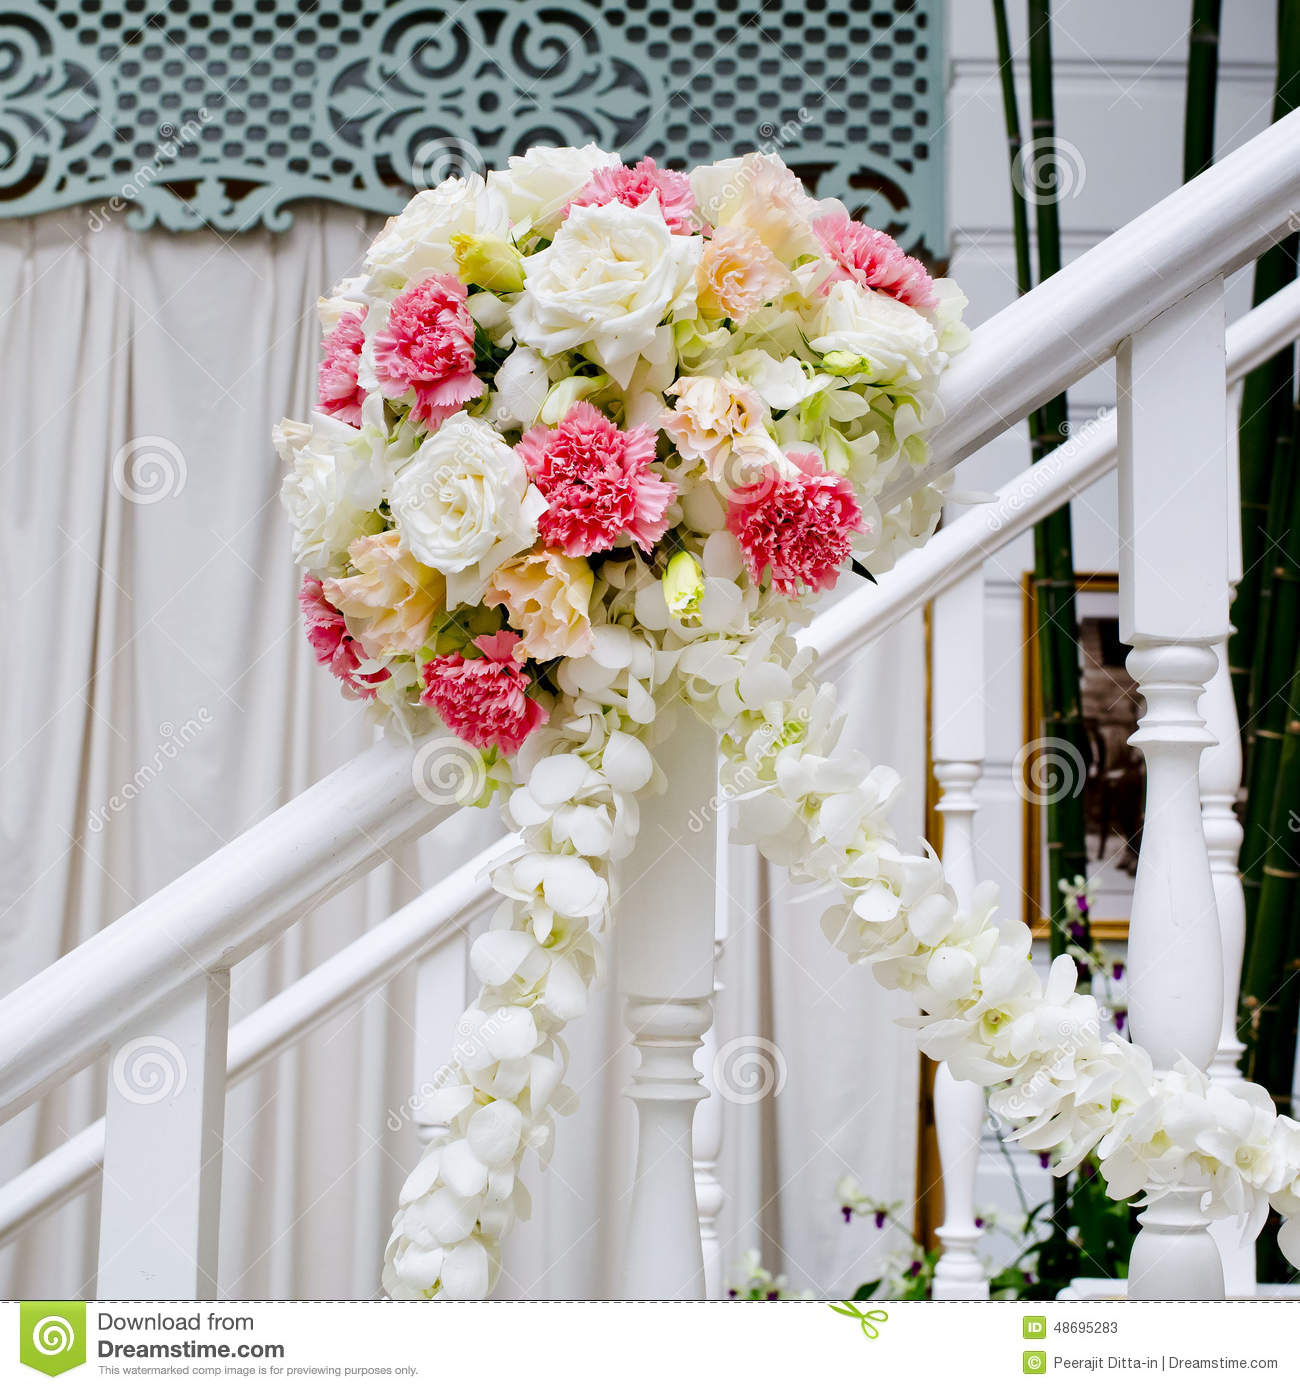 Beautiful Wedding Flower Decoration At Stairs Stock Photo